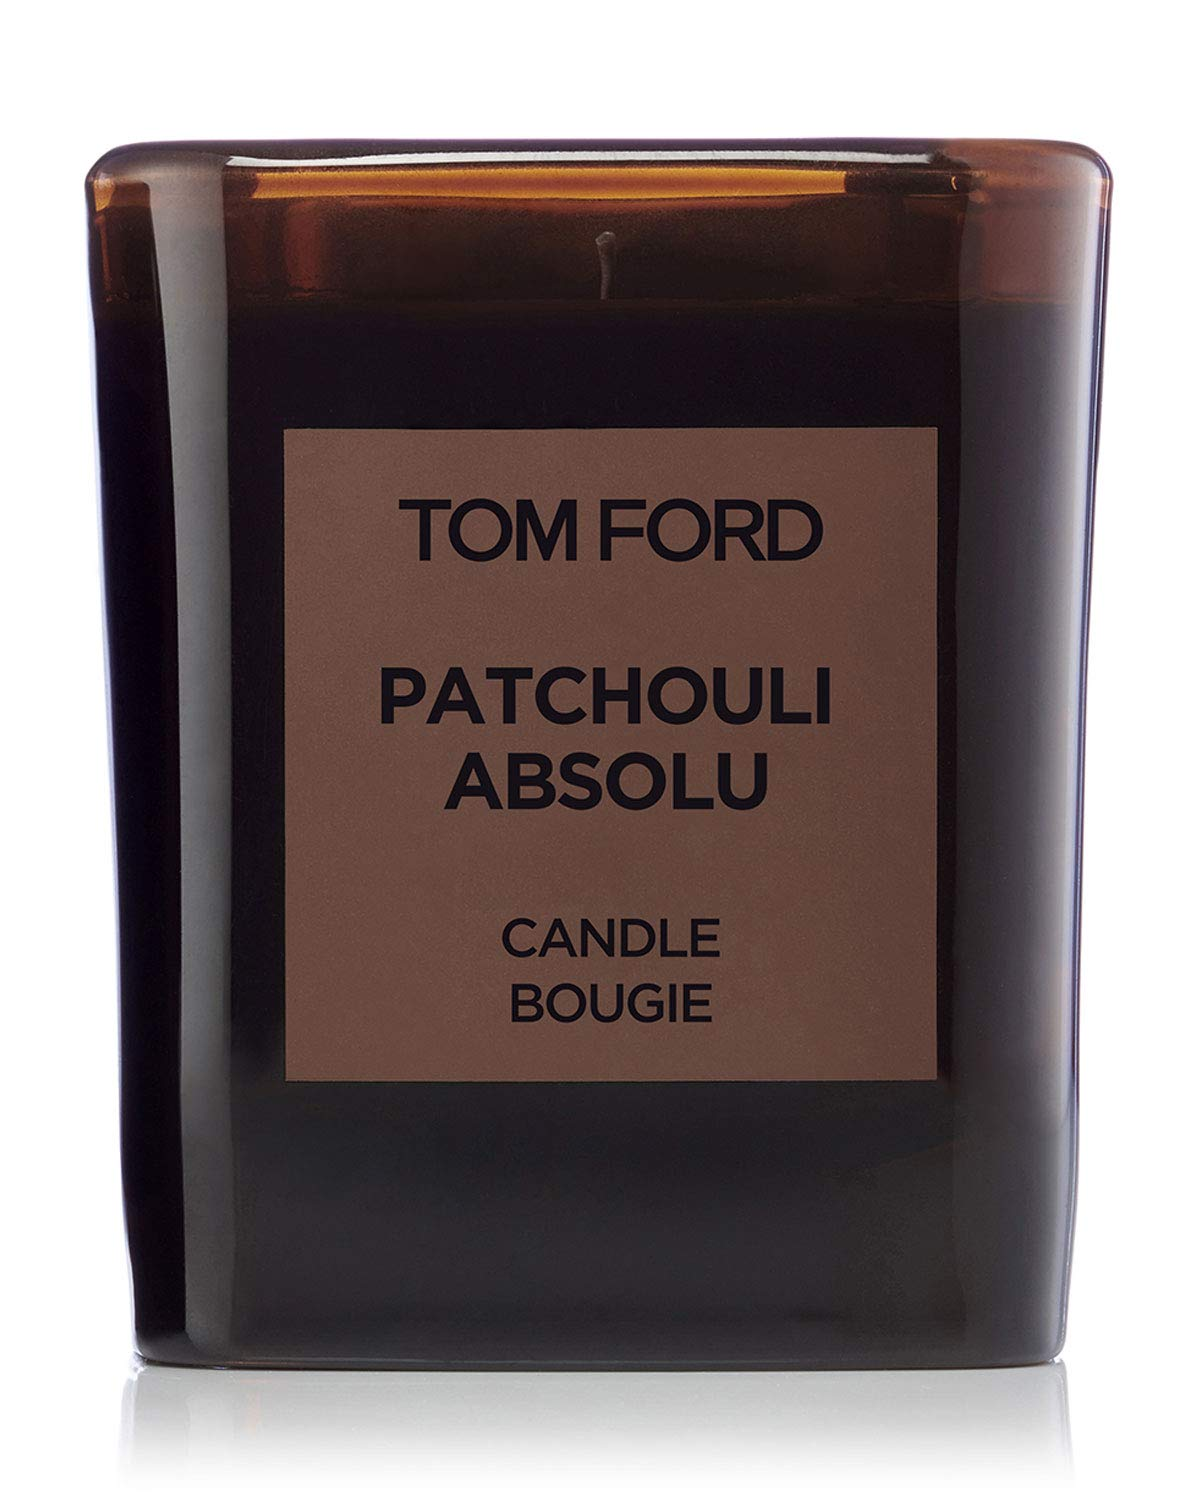 Patchouli Absolu Candle Brand New and Genuine!